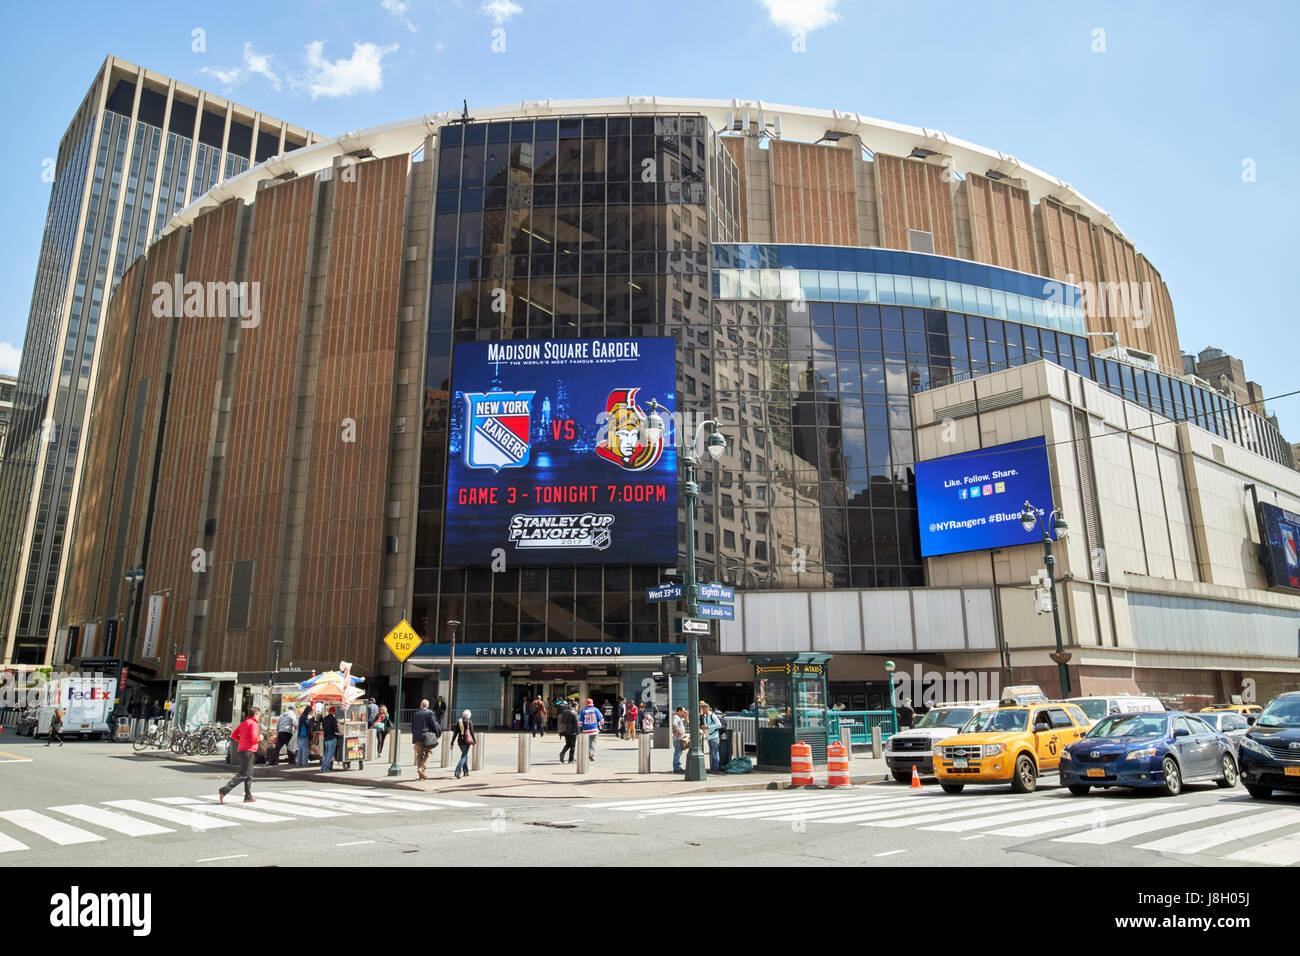 Entrance To Pennsylvania Station And Madison Square Garden New York Stock Photo Royalty Free